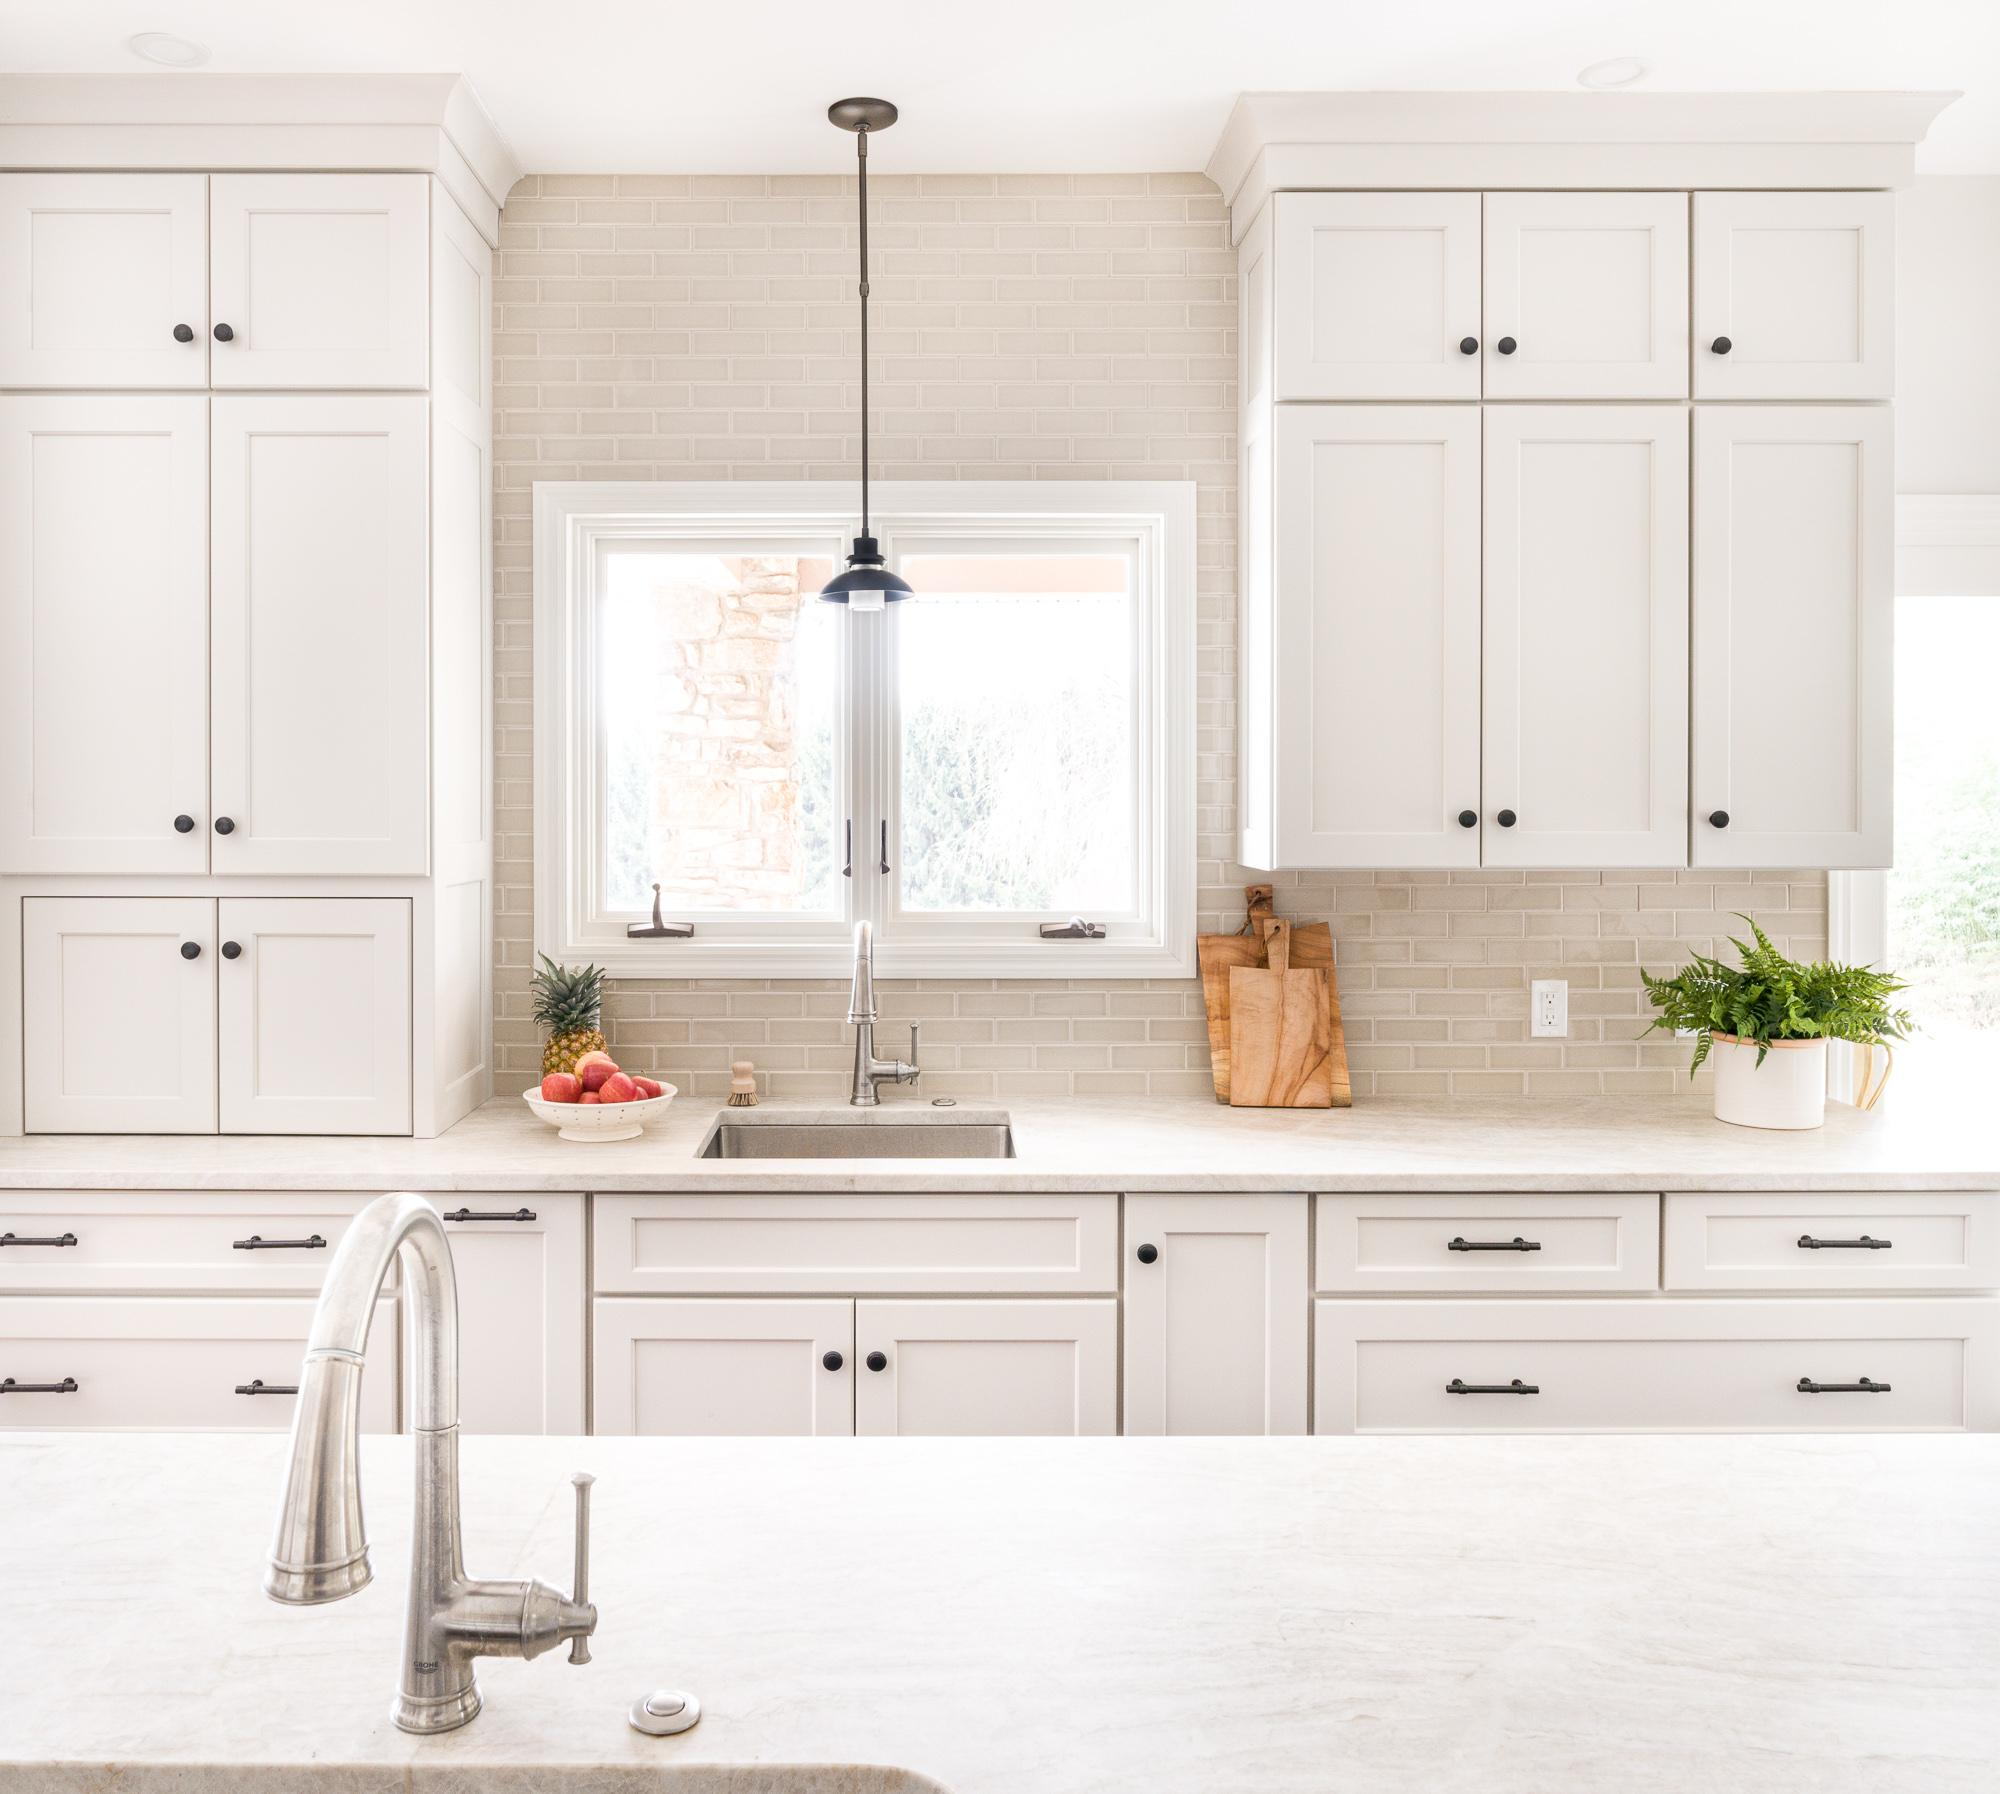 White cabinets and kitchen counters with cutting boards and plants